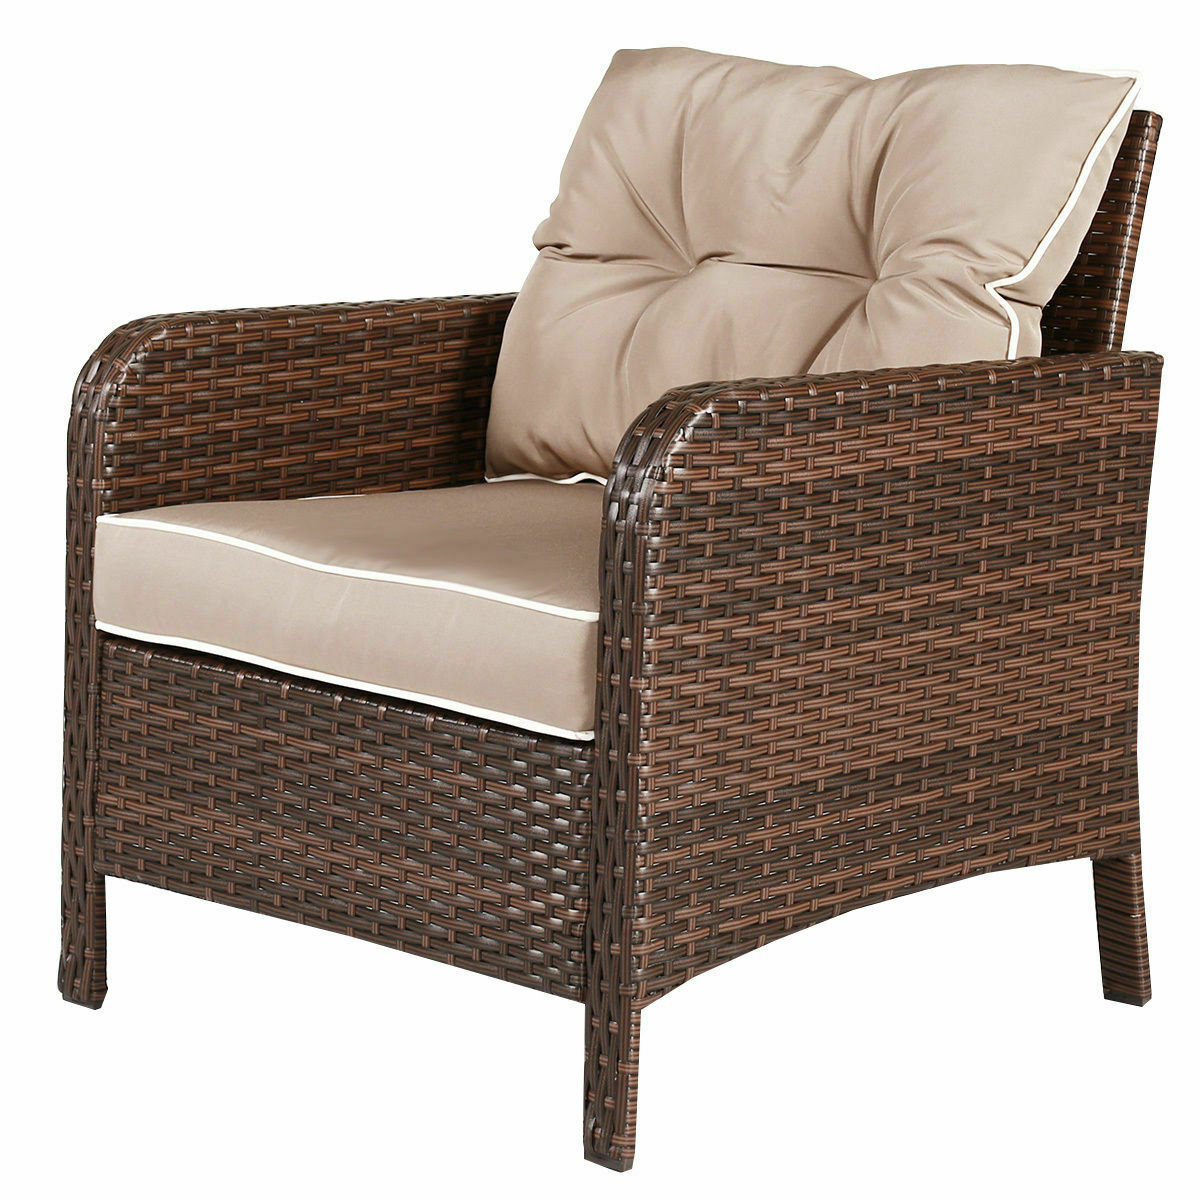 gymax 5 pc patio set sectional